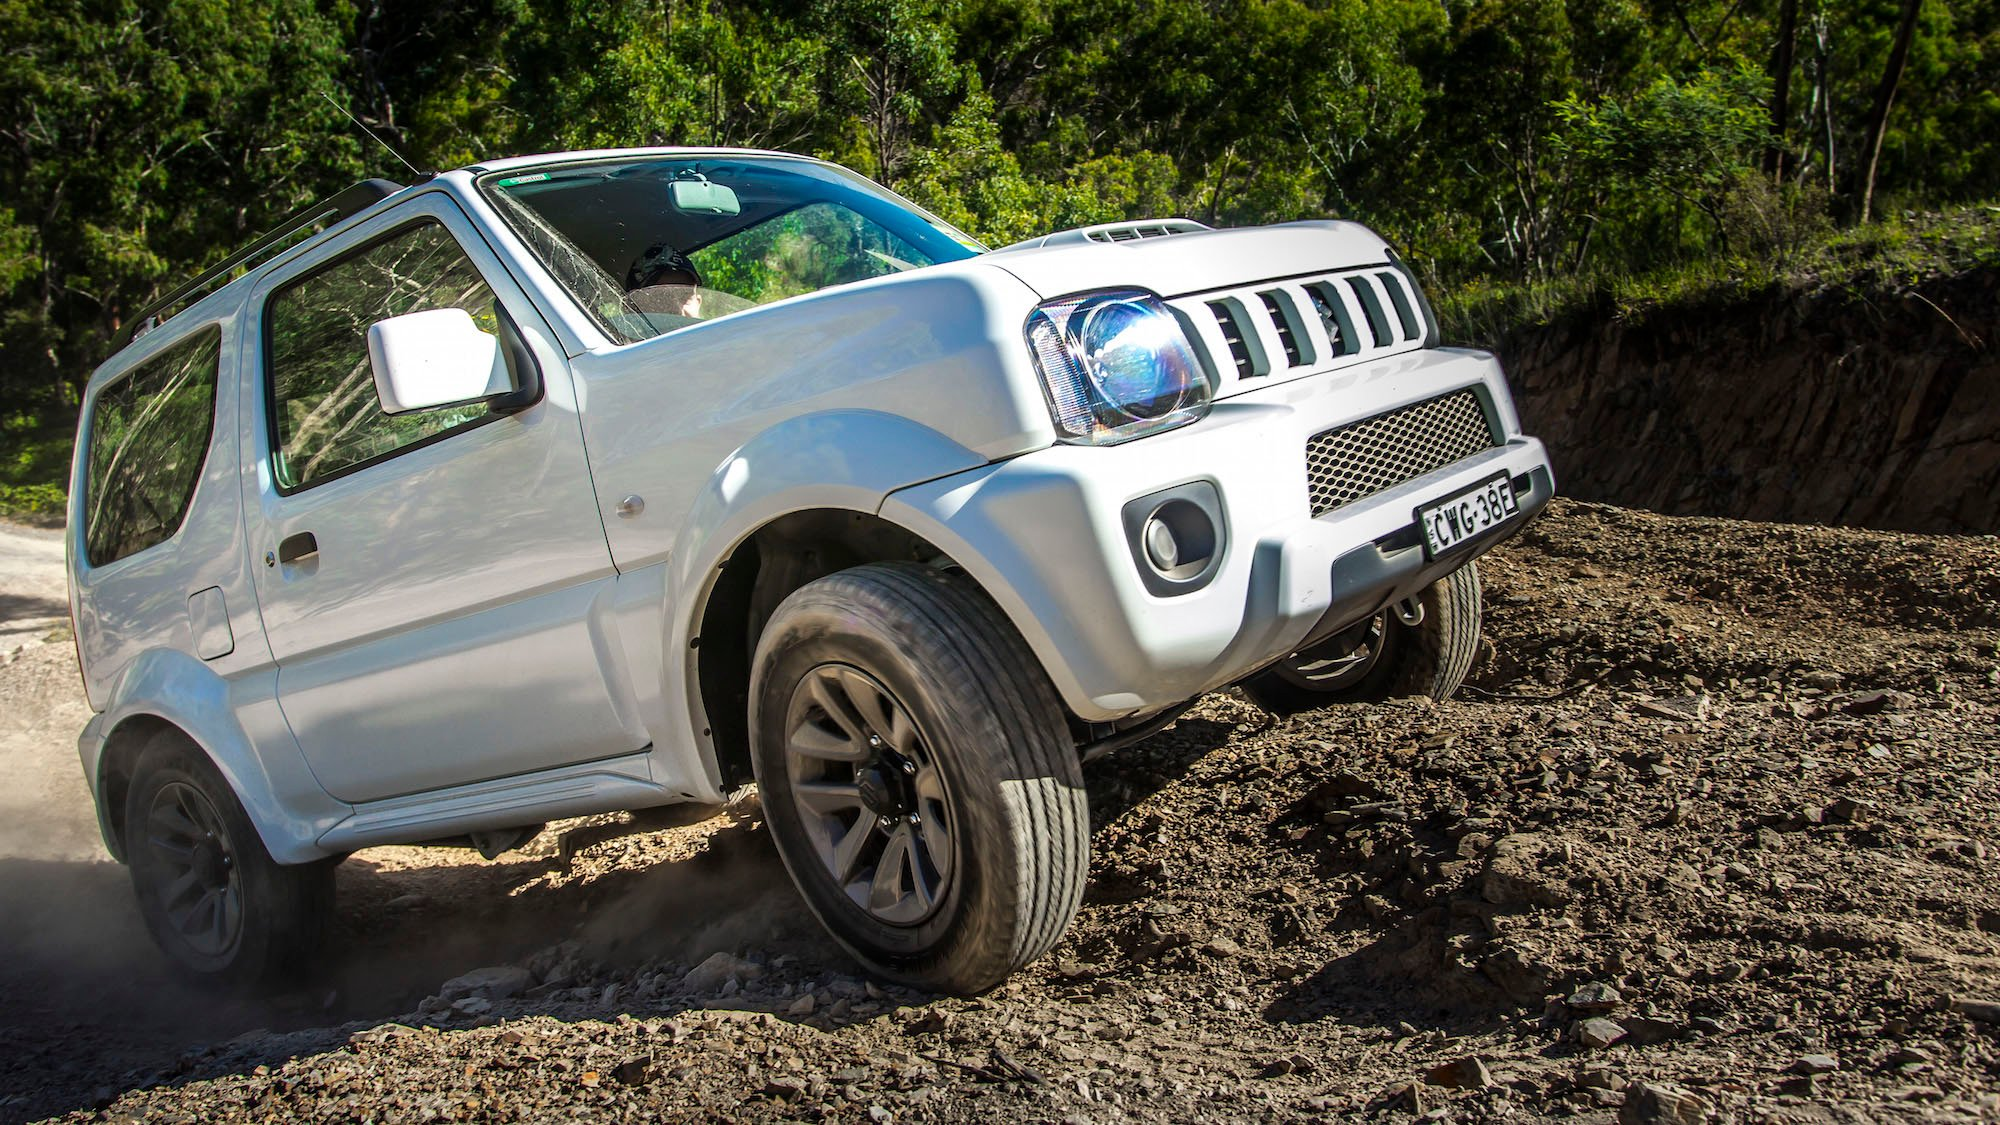 2015 suzuki jimny sierra review photos caradvice. Black Bedroom Furniture Sets. Home Design Ideas